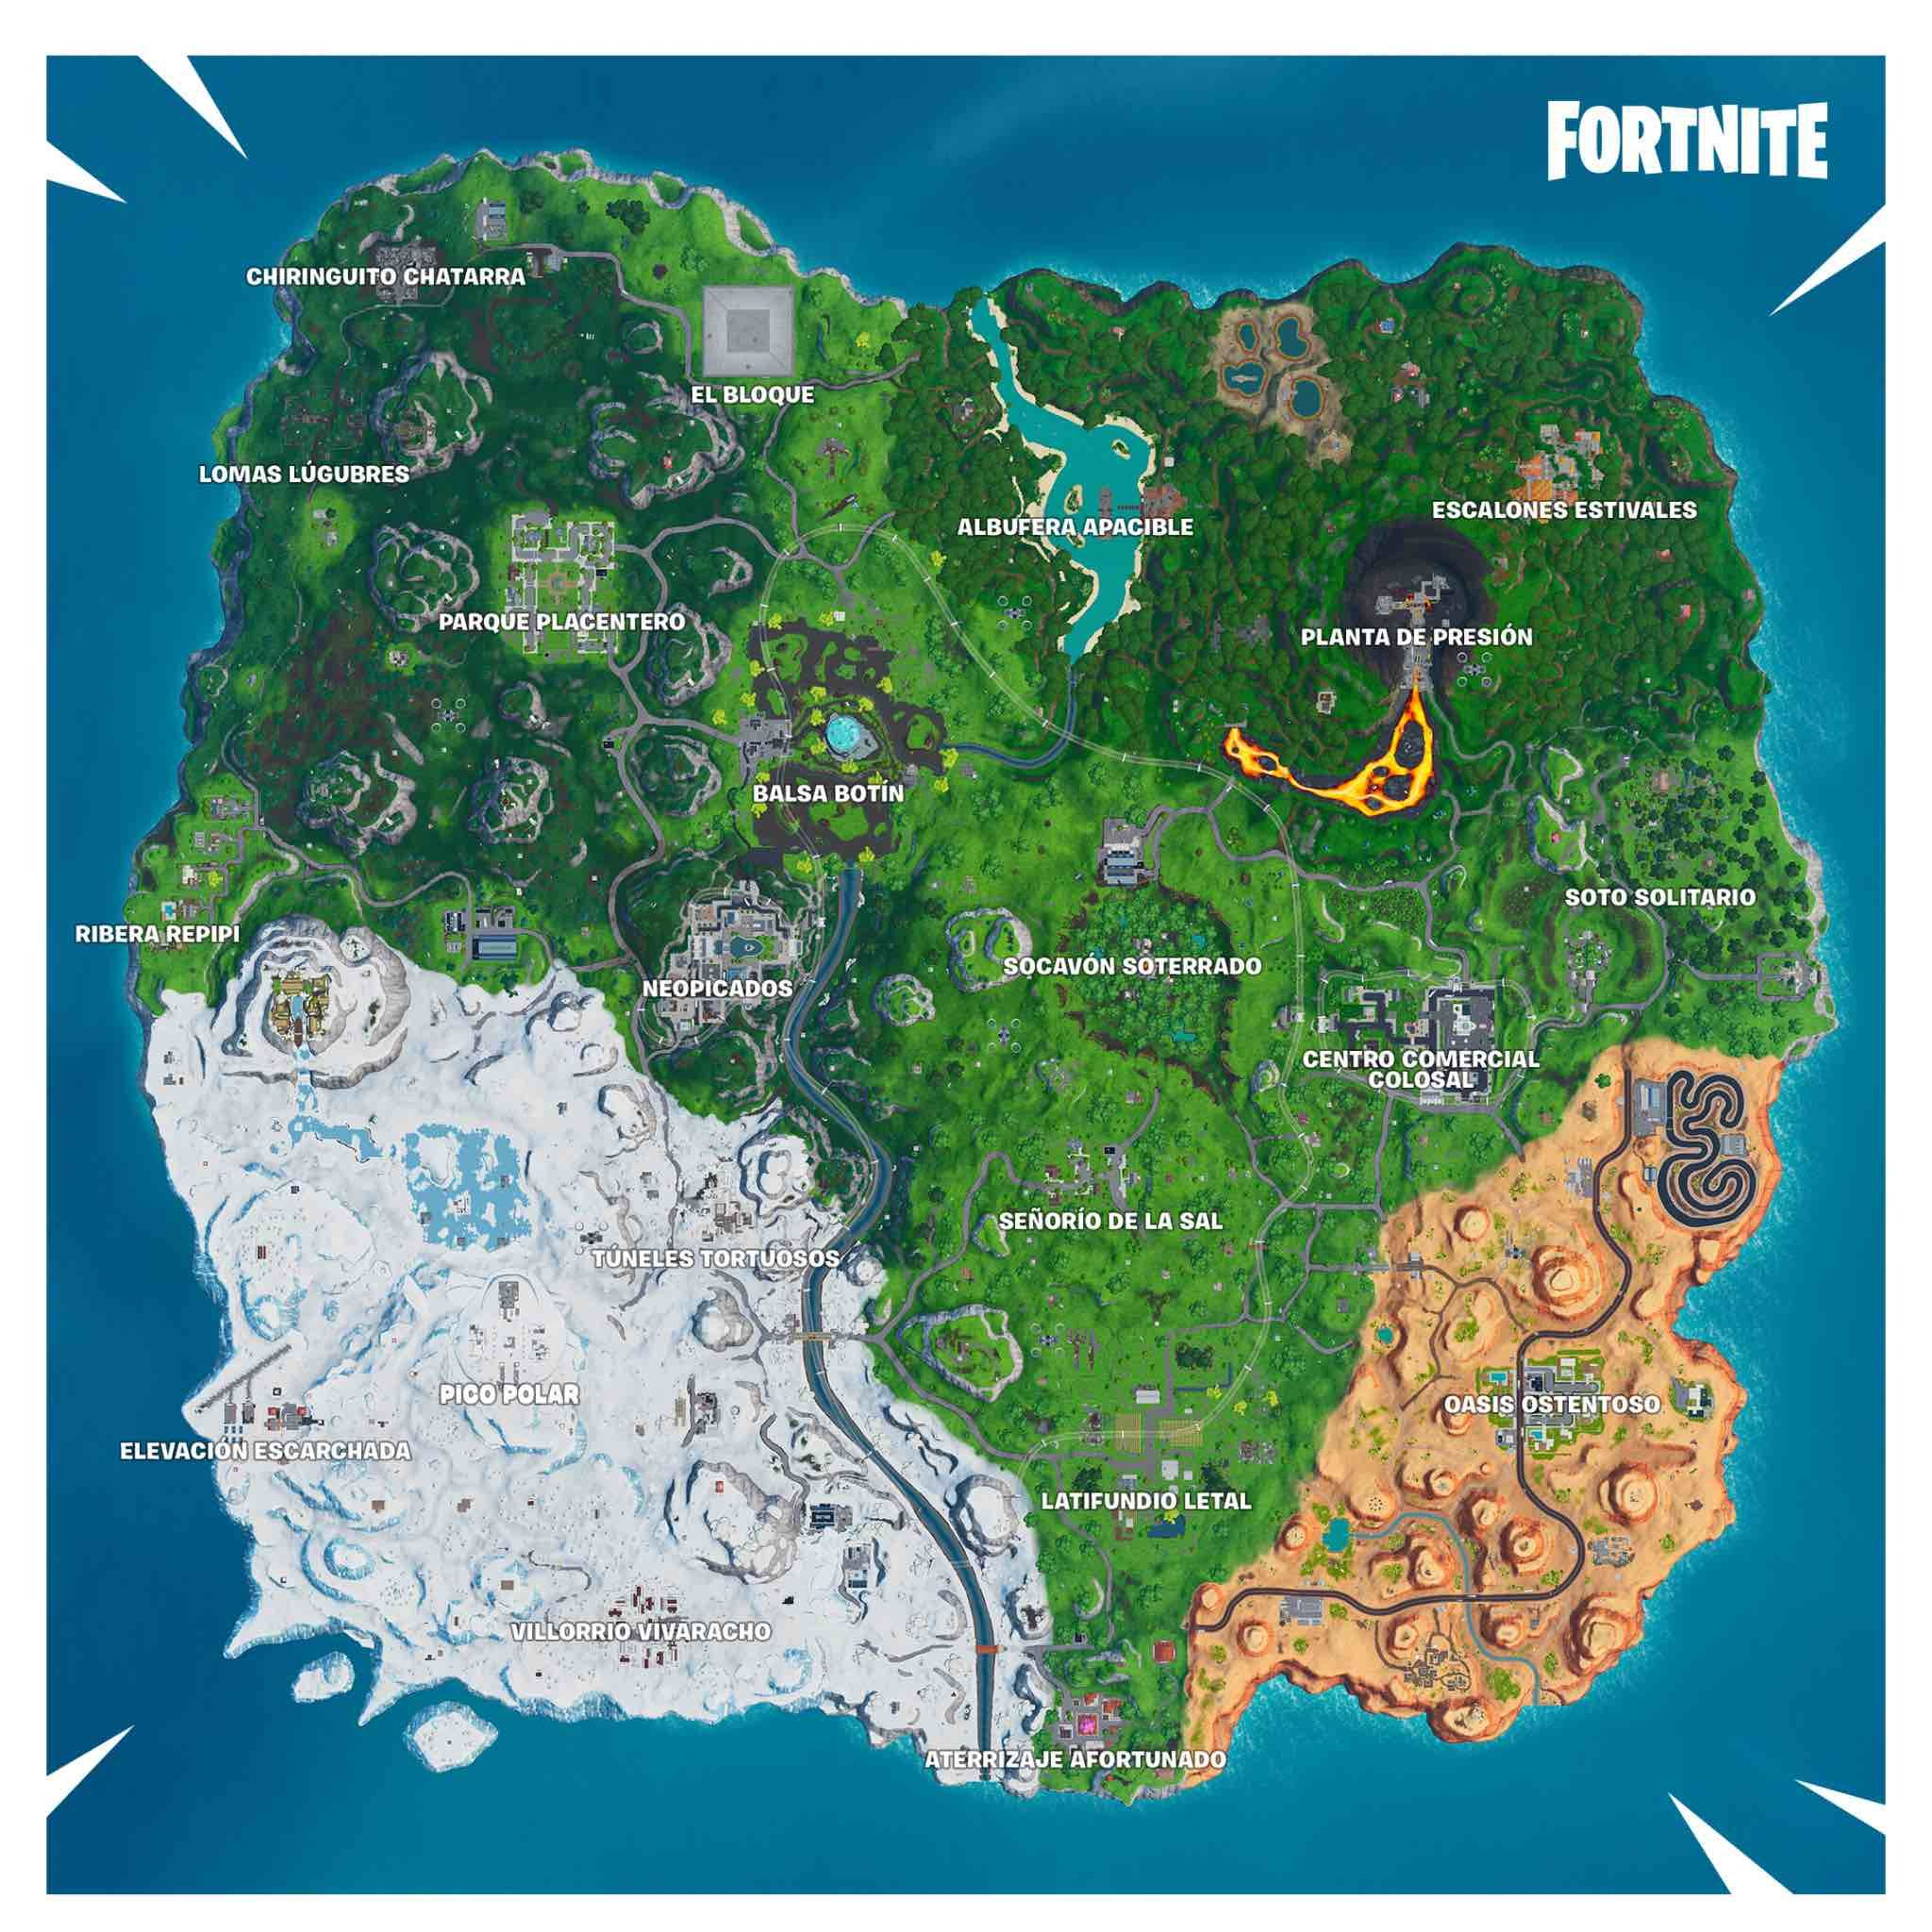 Mapa Fortnite Temporada 9.Cambios En El Mapa De Fortnite Temporada 9 En 2019